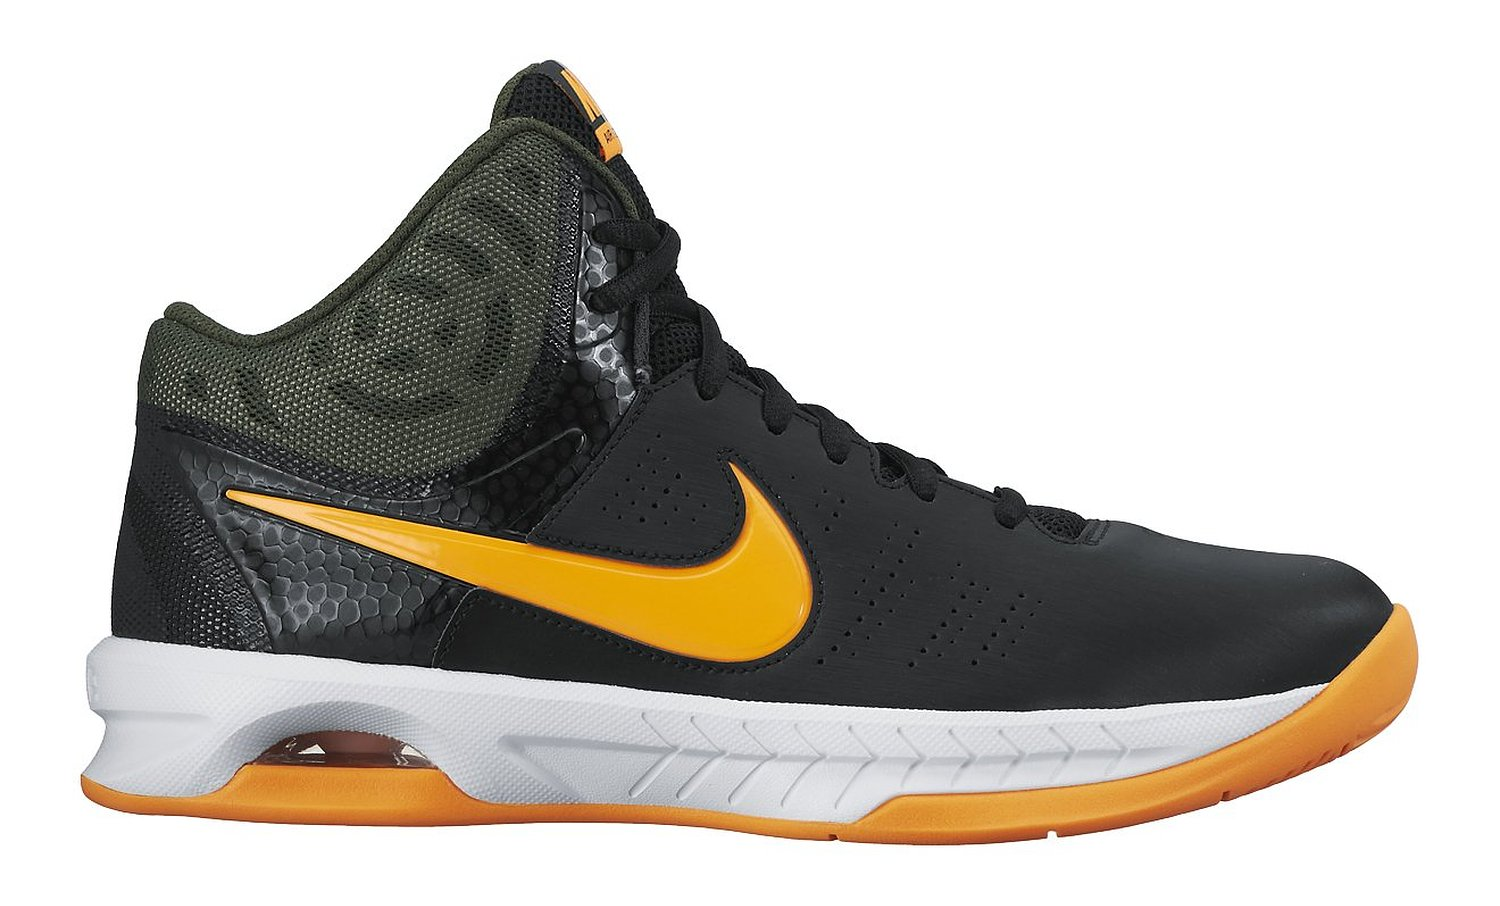 eac91c3a7a77 Get Quotations · Nike Men s Air Visi Pro VI